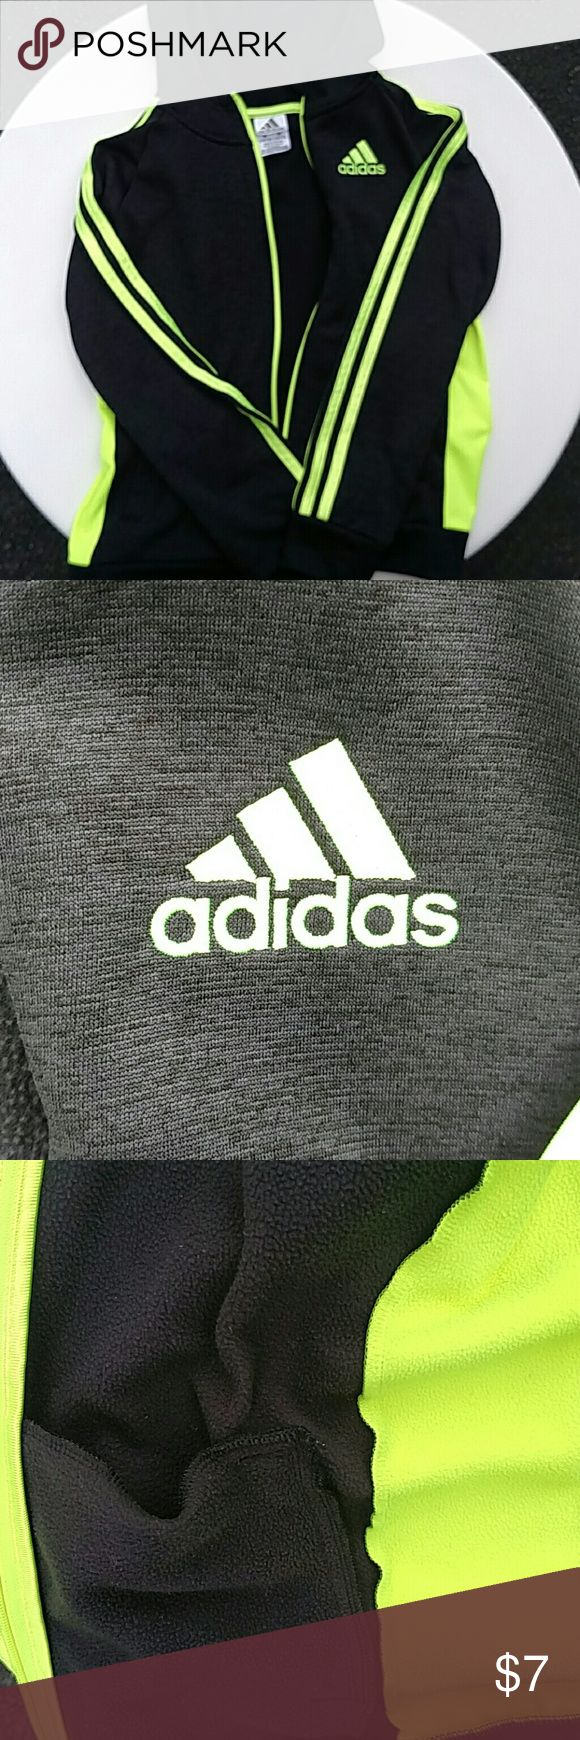 Adidas ** Zip Jacket Lime green and black hoodie. The body